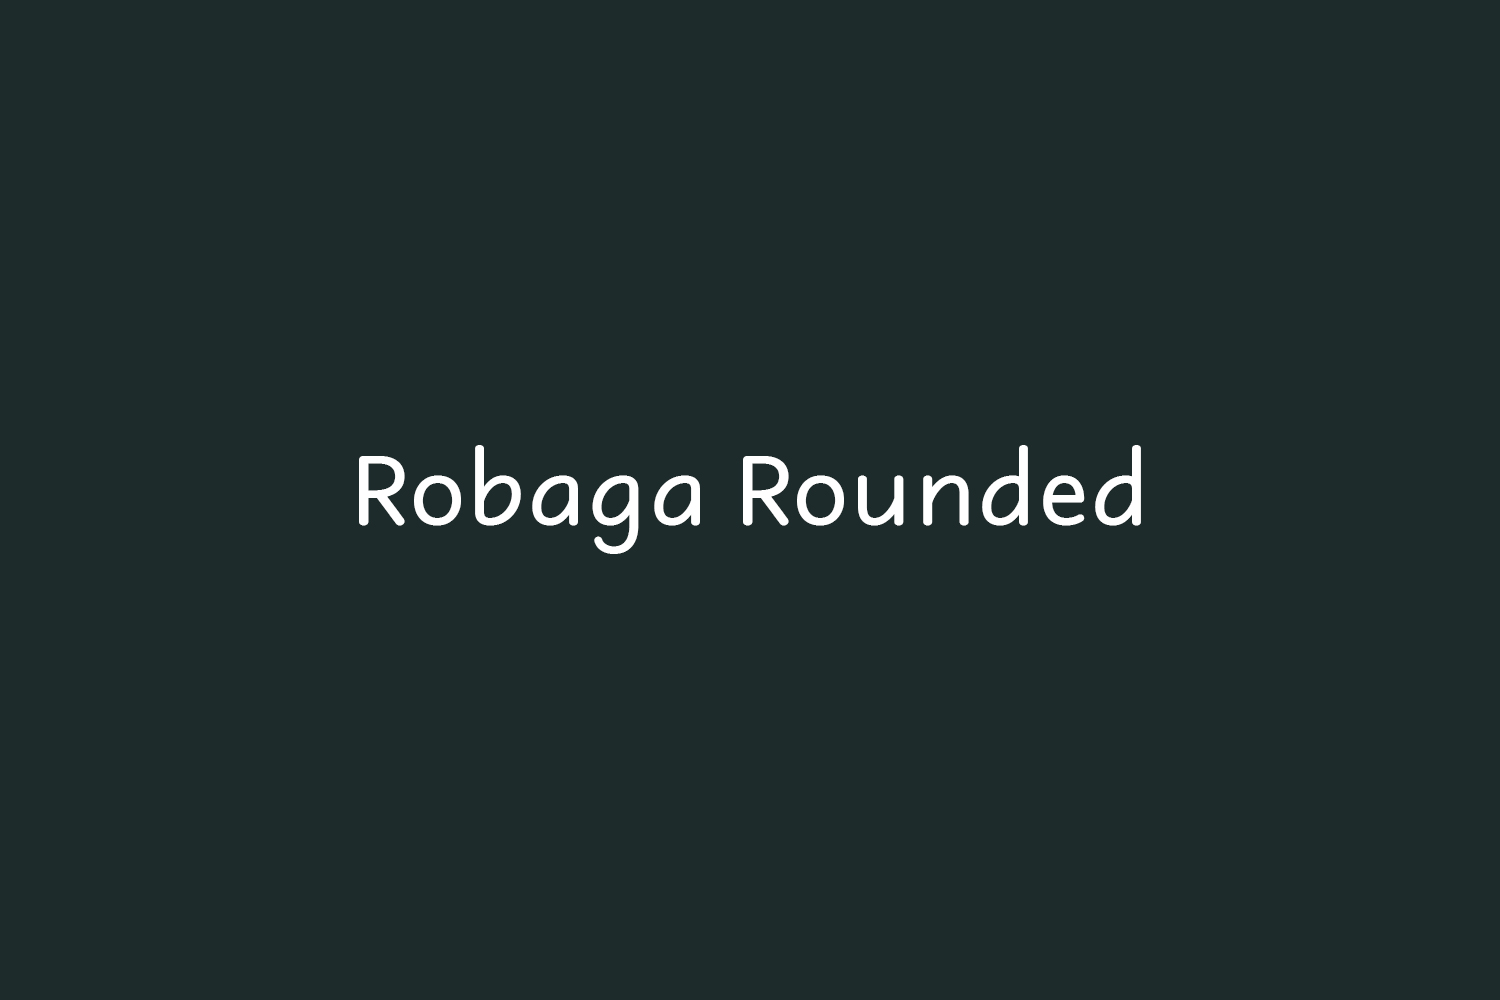 Robaga Rounded Free Font